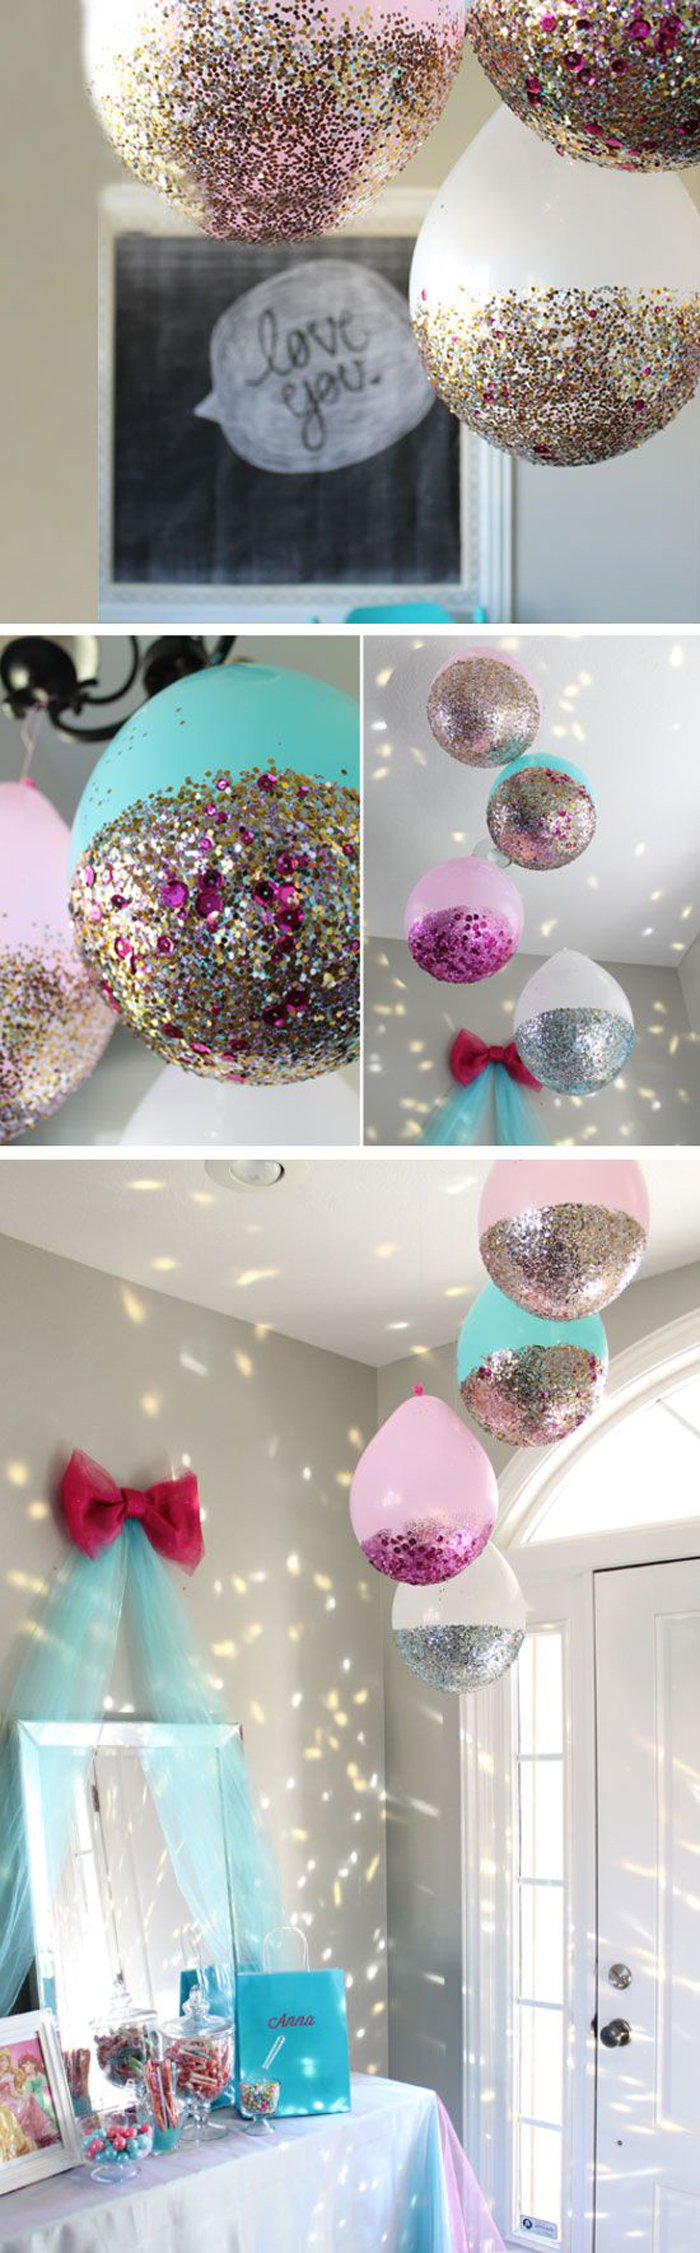 New Years Eve Party Decorations Glitter | Glitter balloons ...